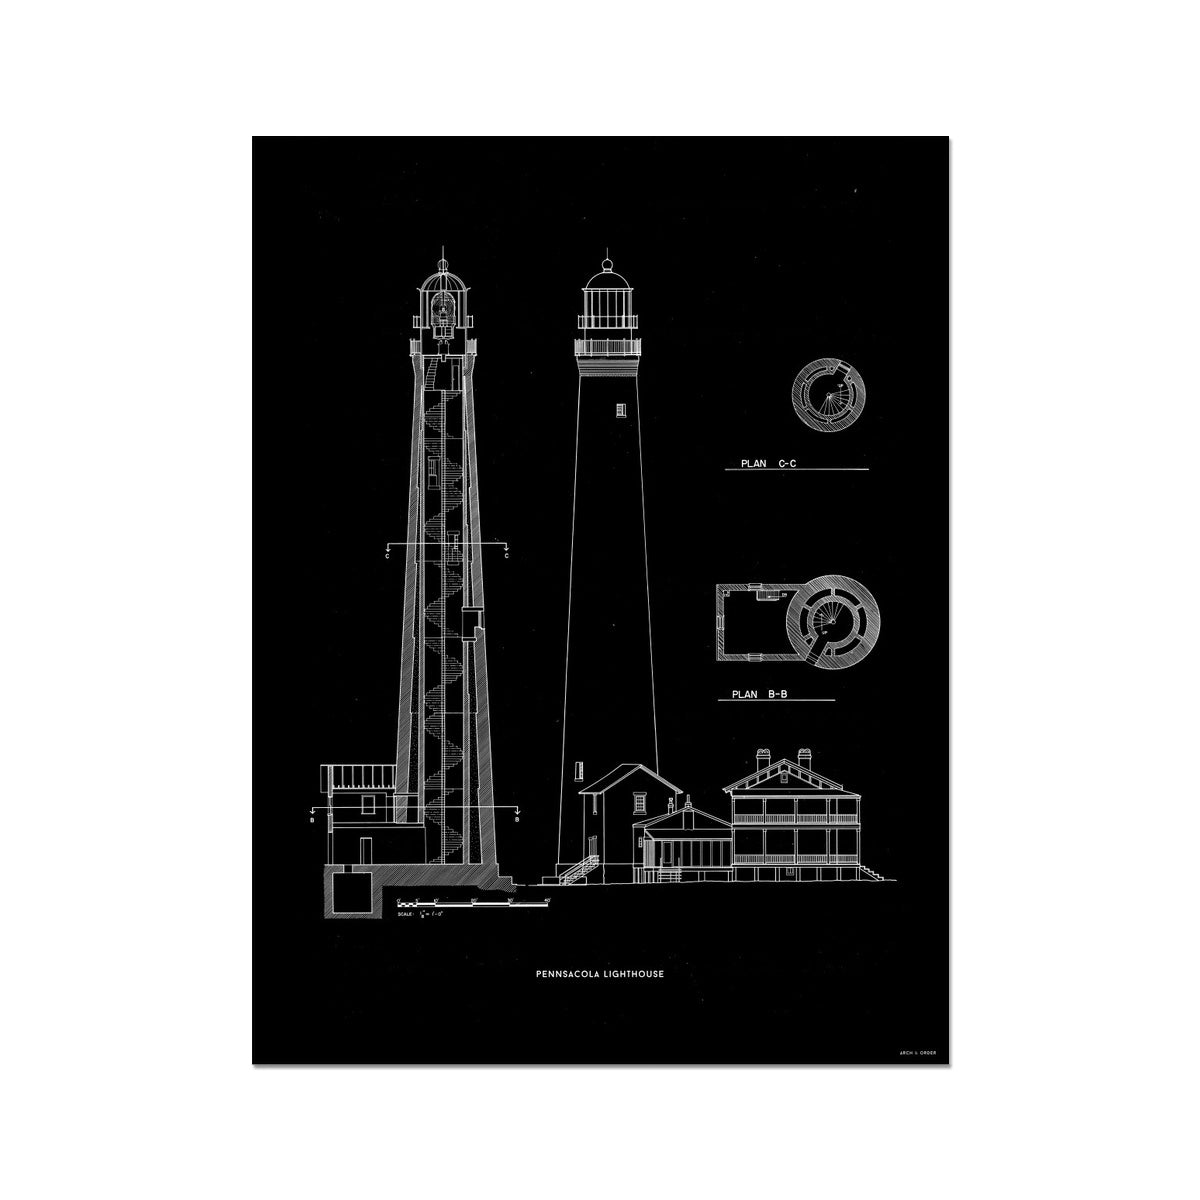 The Pensacola Lighthouse - West Elevation and Cross Section - Black - German Etching Print